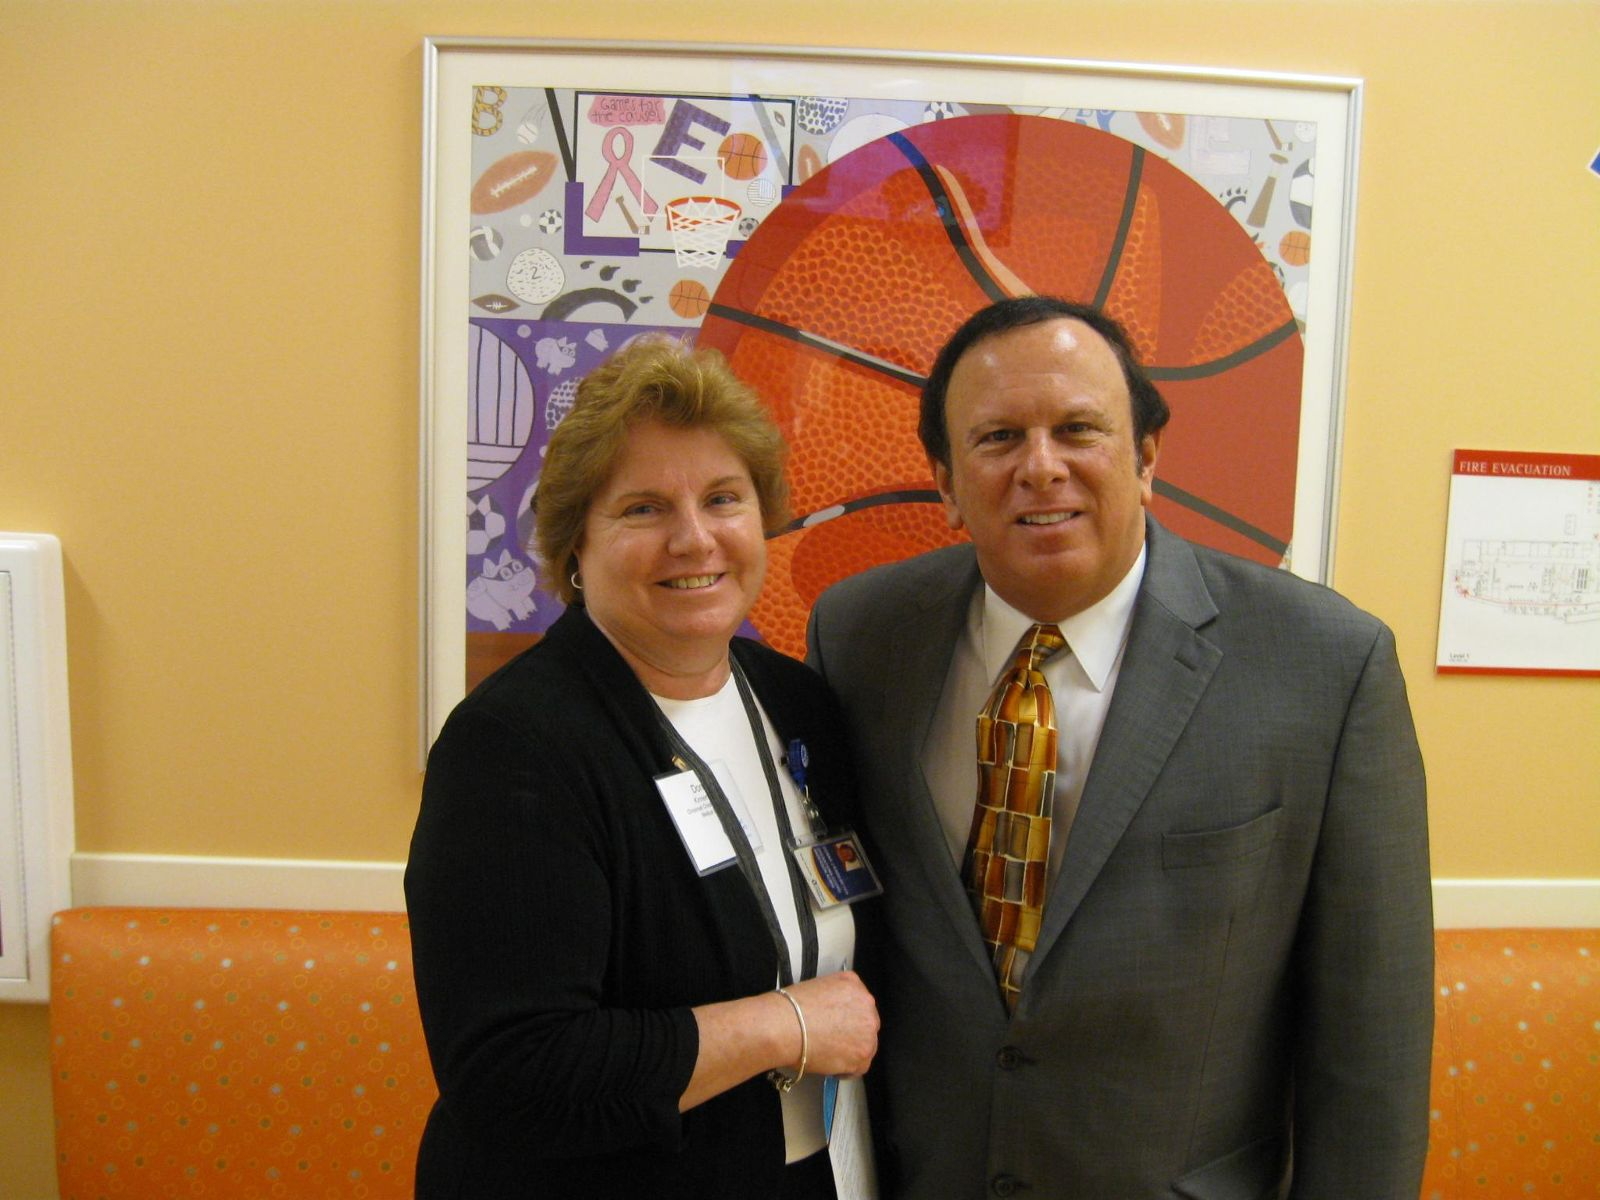 Image of Trustee Tony Rosiello and Donna Kinnemeyer from Children's Hospital